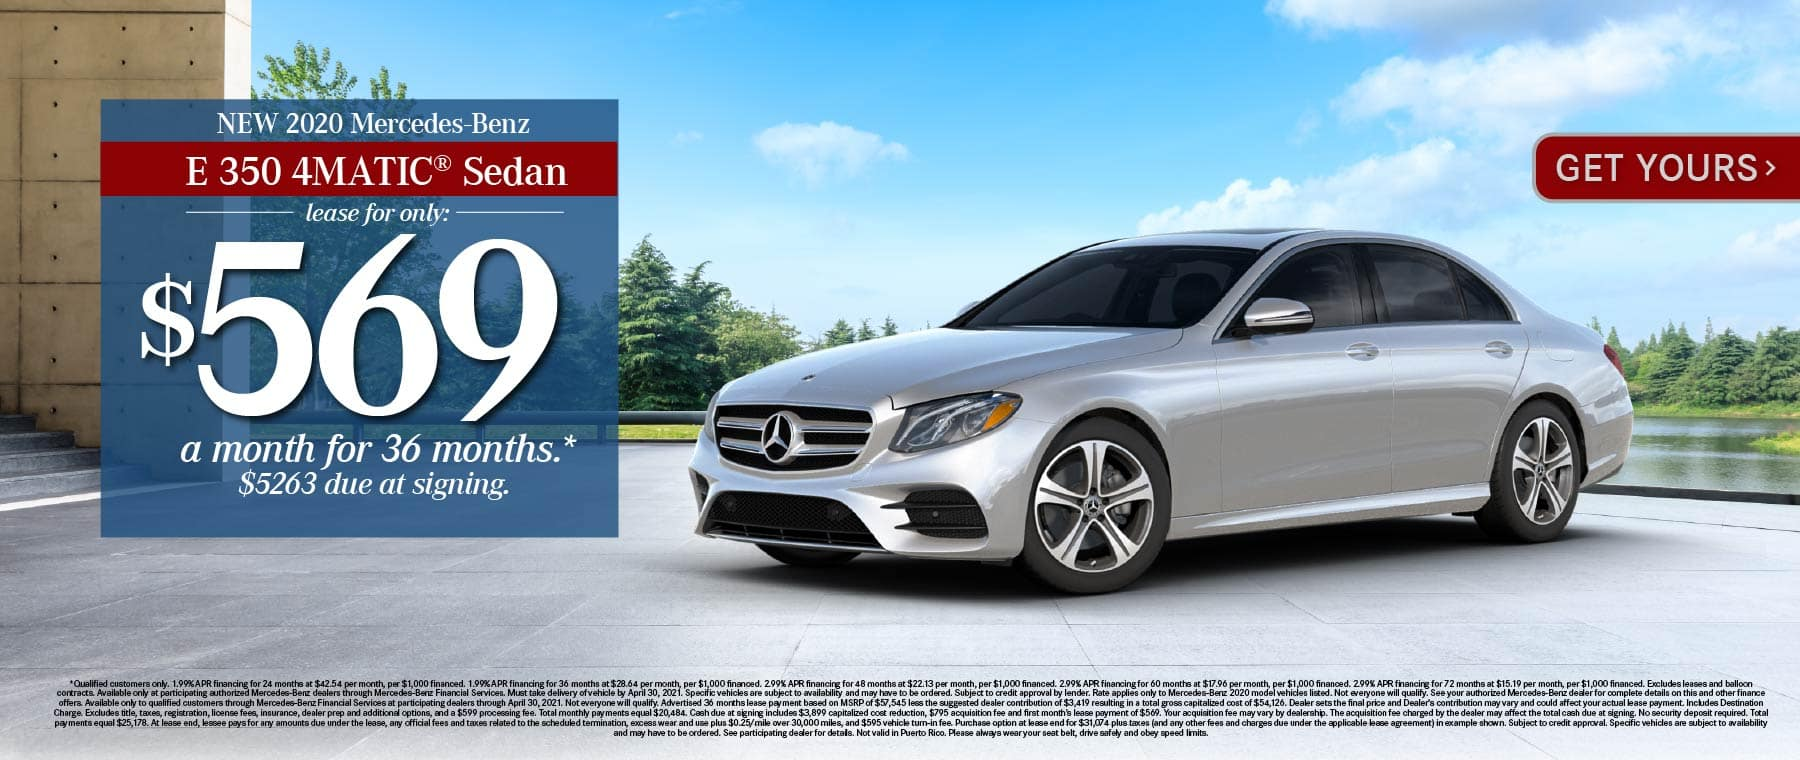 New 2021 Mercedes-Benz E 350 4MATIC® Lease for only: $569 a month for 36 months. $5263 due at signing. Get Yours.